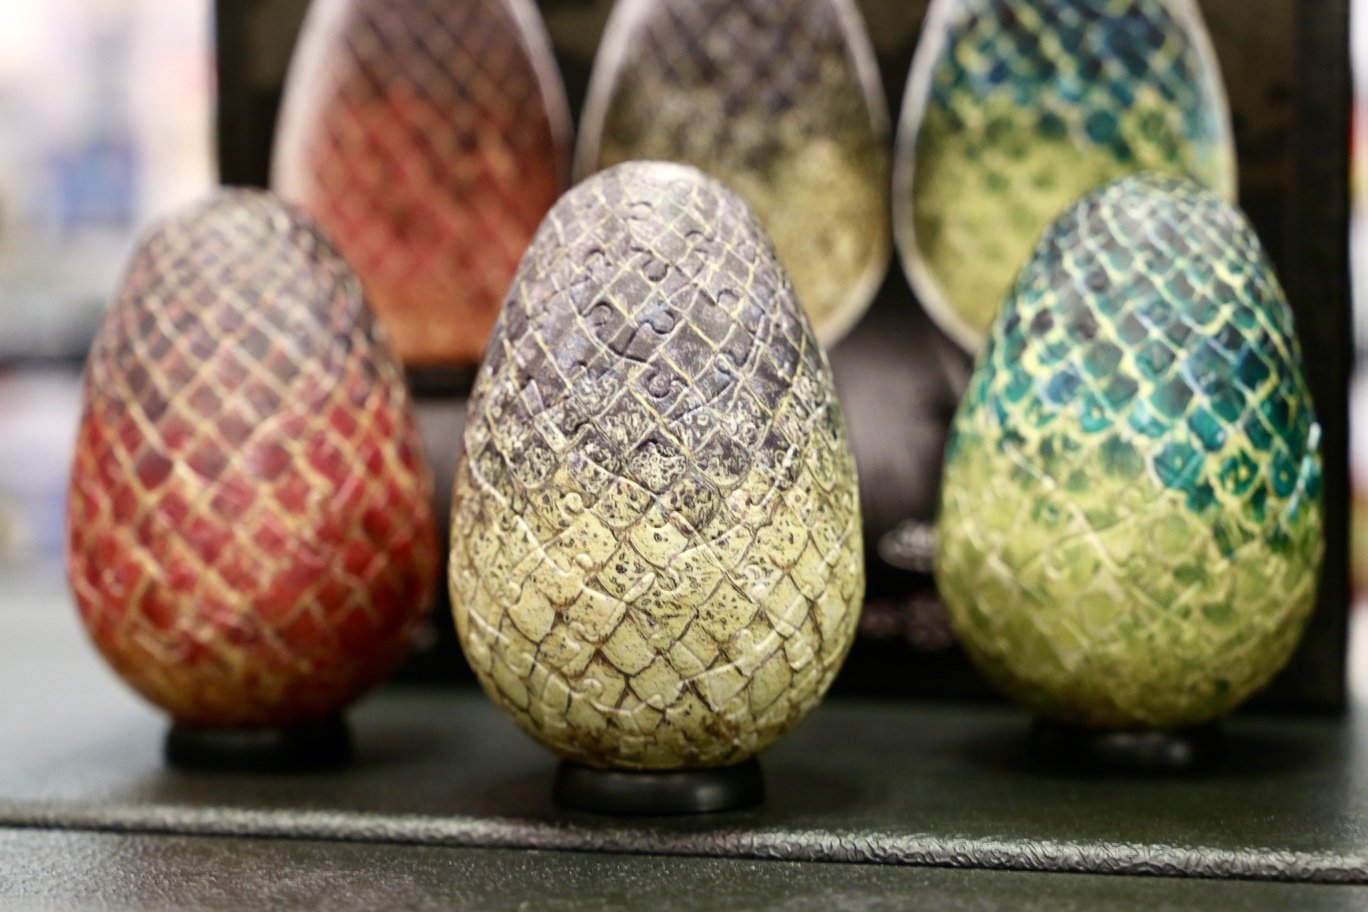 Check out the #GameofThrones Dragon Egg Puzzles by @4DCityscape at booth #1948. #NYTF2018 https://t.co/jGqGbxWabe